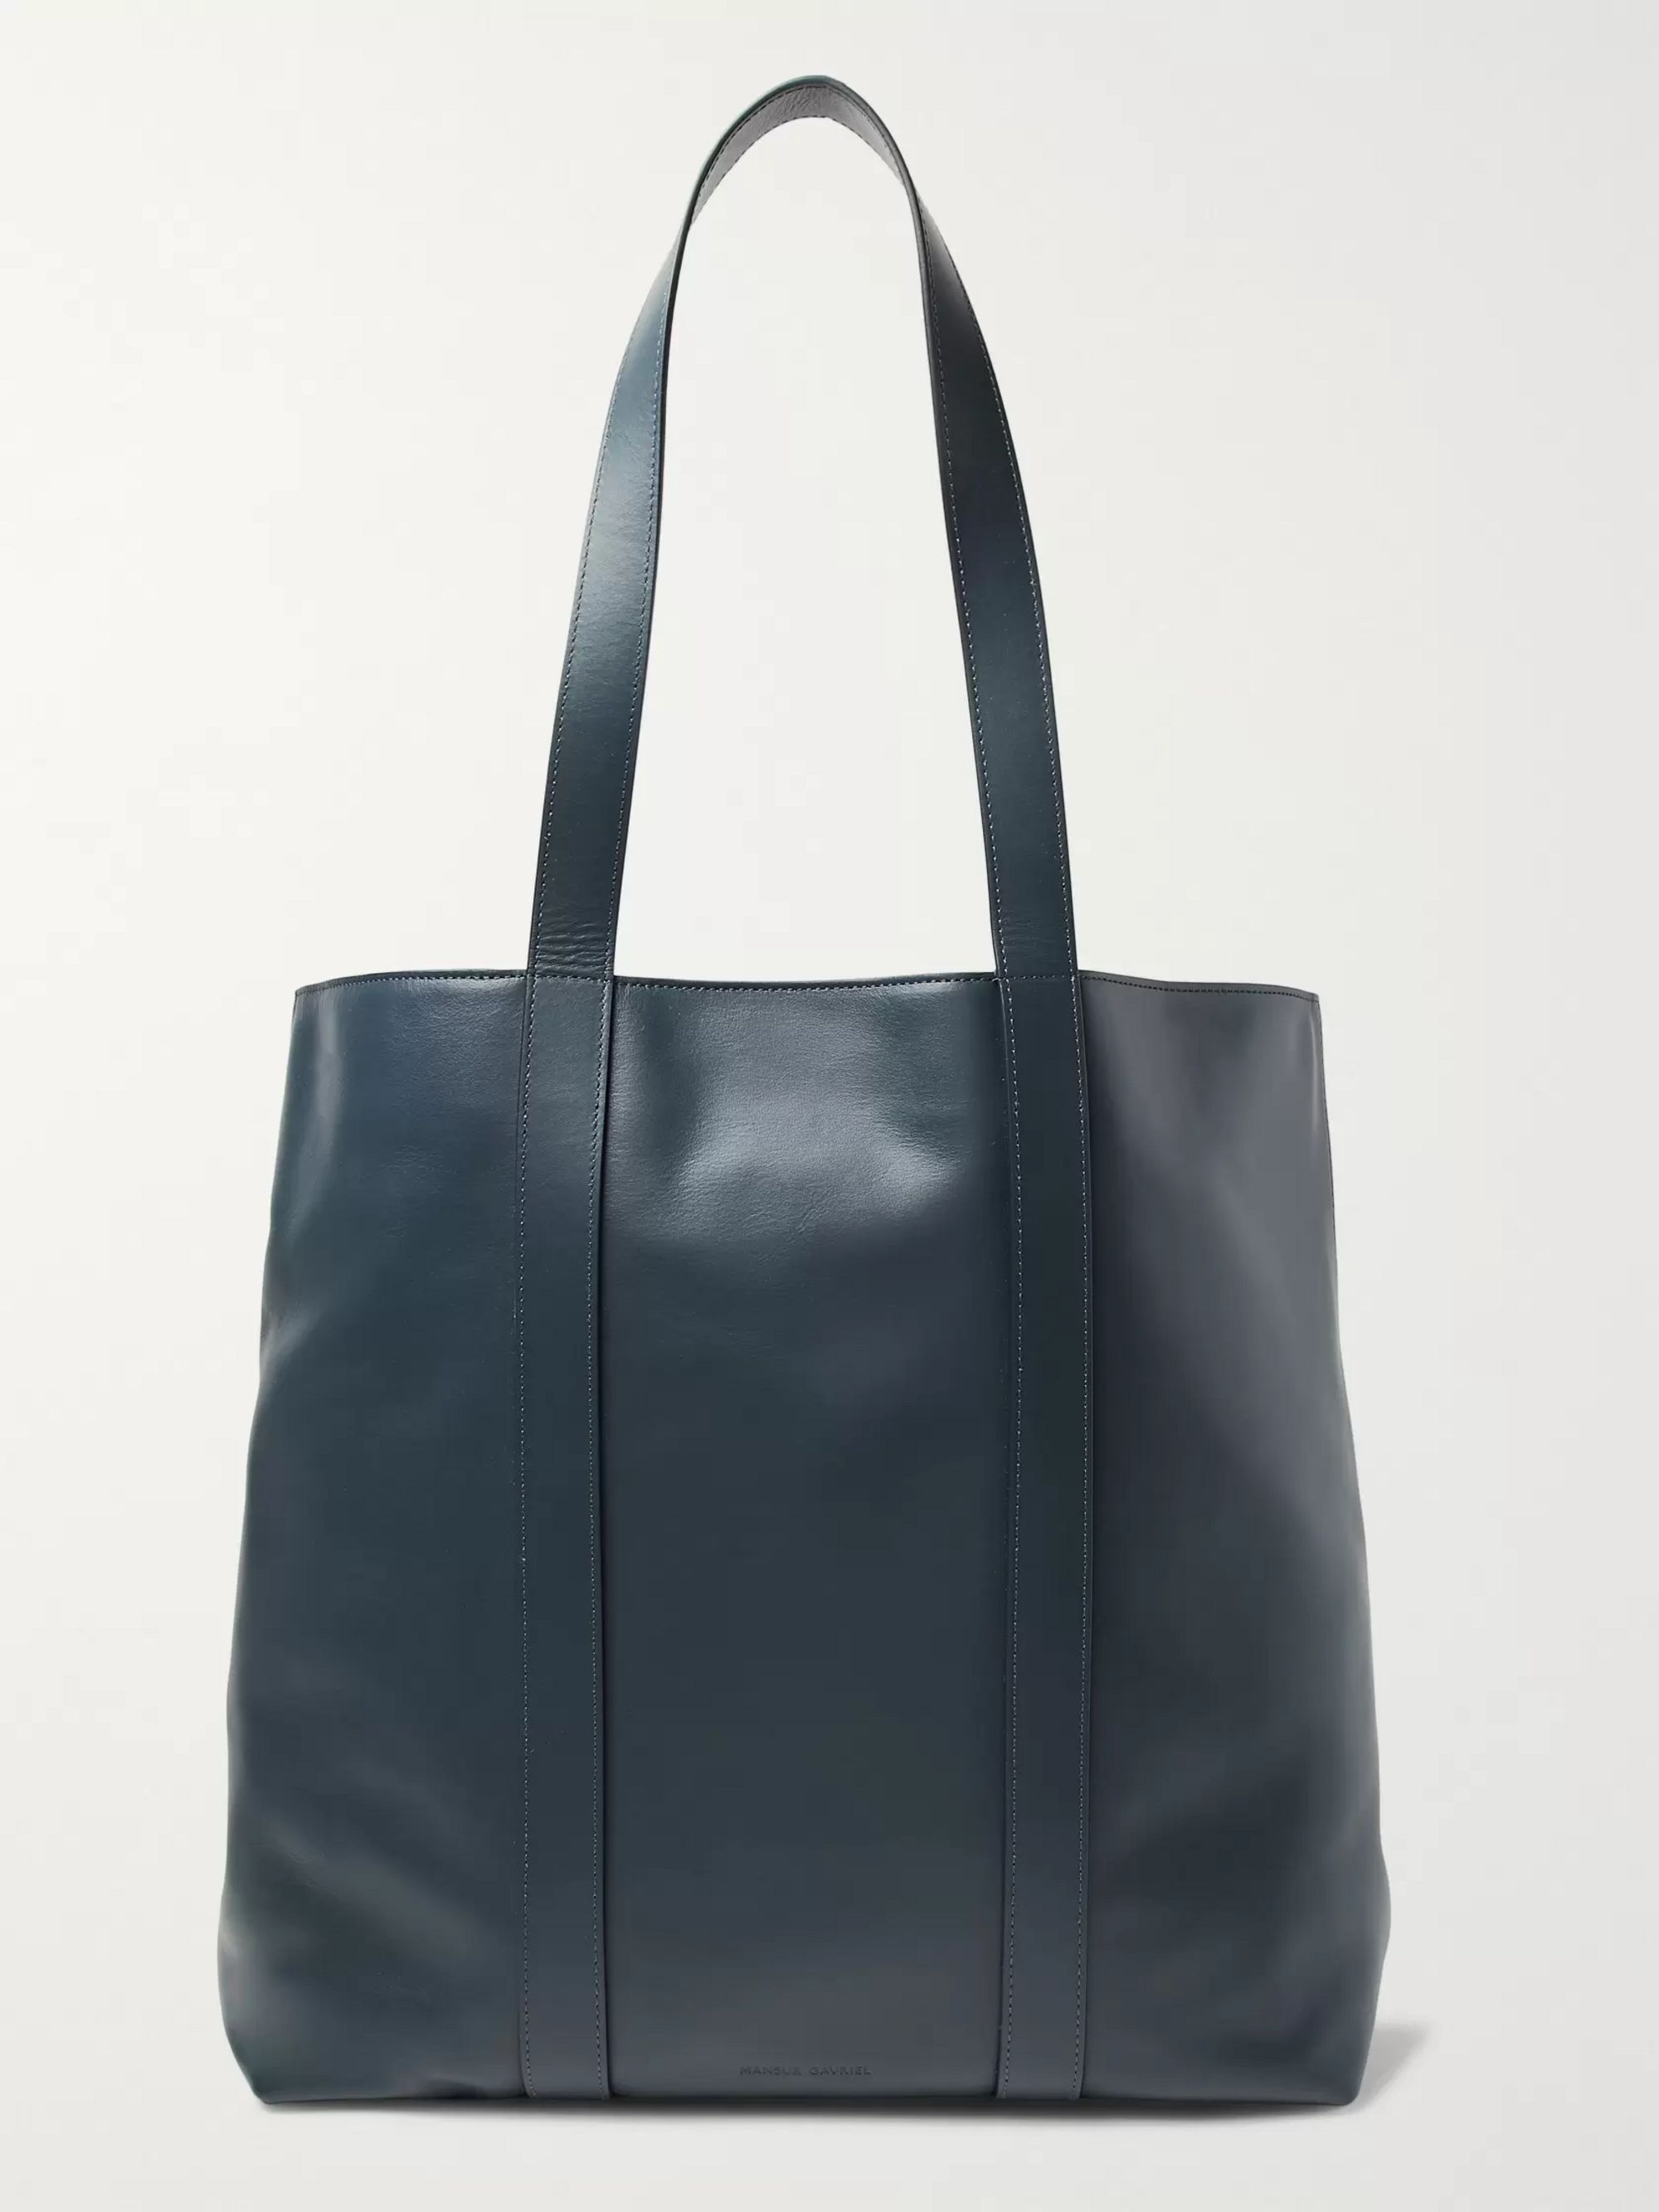 Mansur Gavriel North South Leather Tote Bag